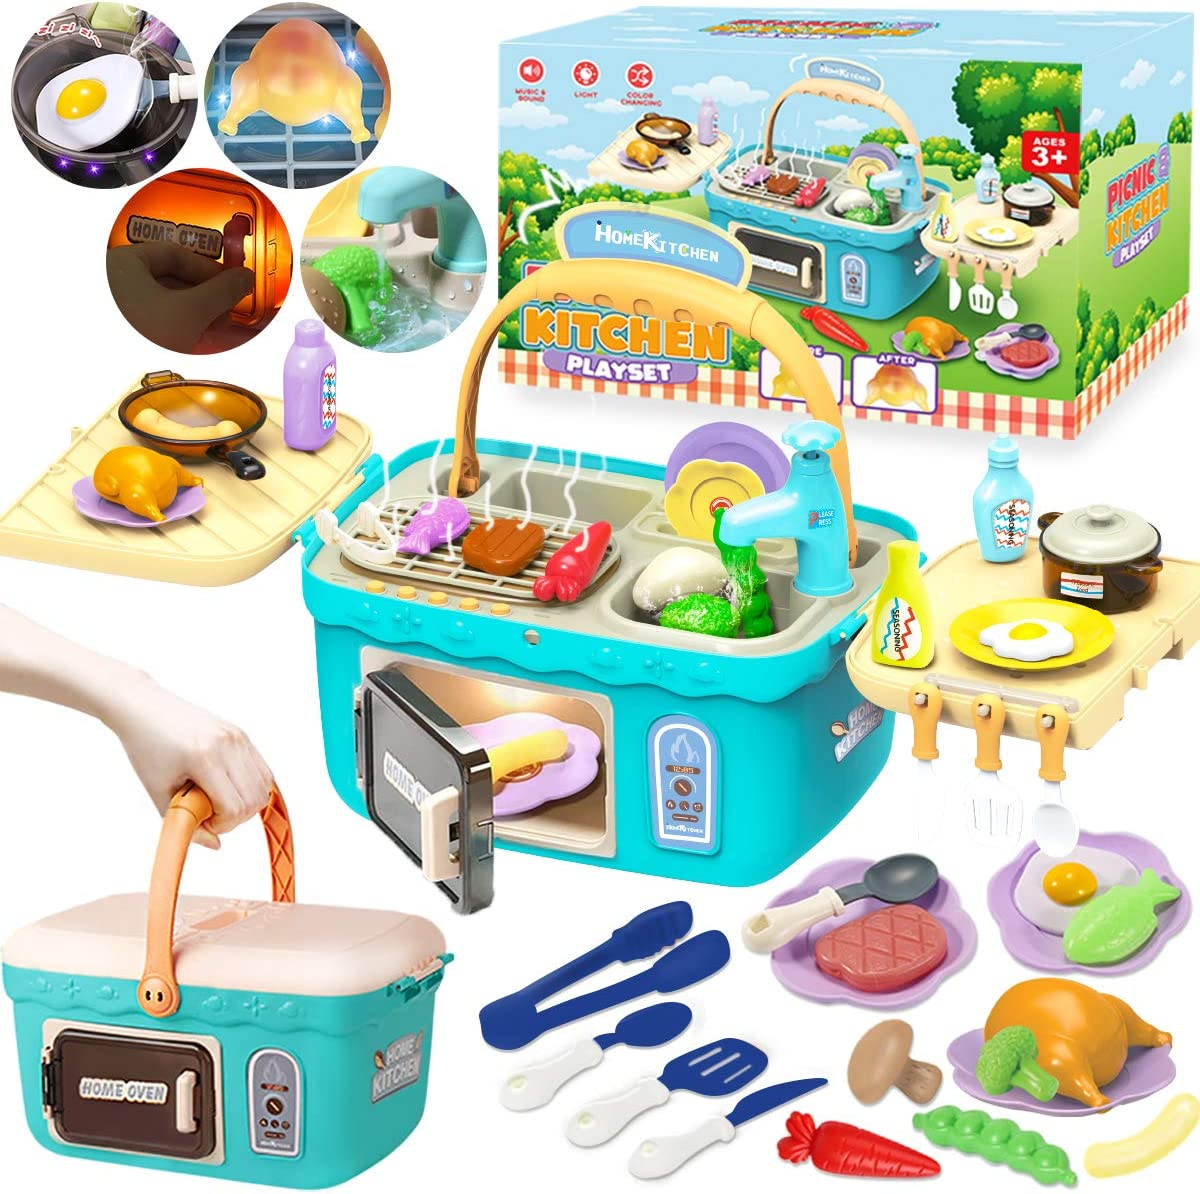 Cheffun Play Kitchen Set toys for Kids - Educational Pretend Play Camping Picnic BBQ Sink Toy Cooking Grill Basket with Musical Light Color Changing Food for Toddlers Age 3 4 5 6 7 Year Old Girls Boys